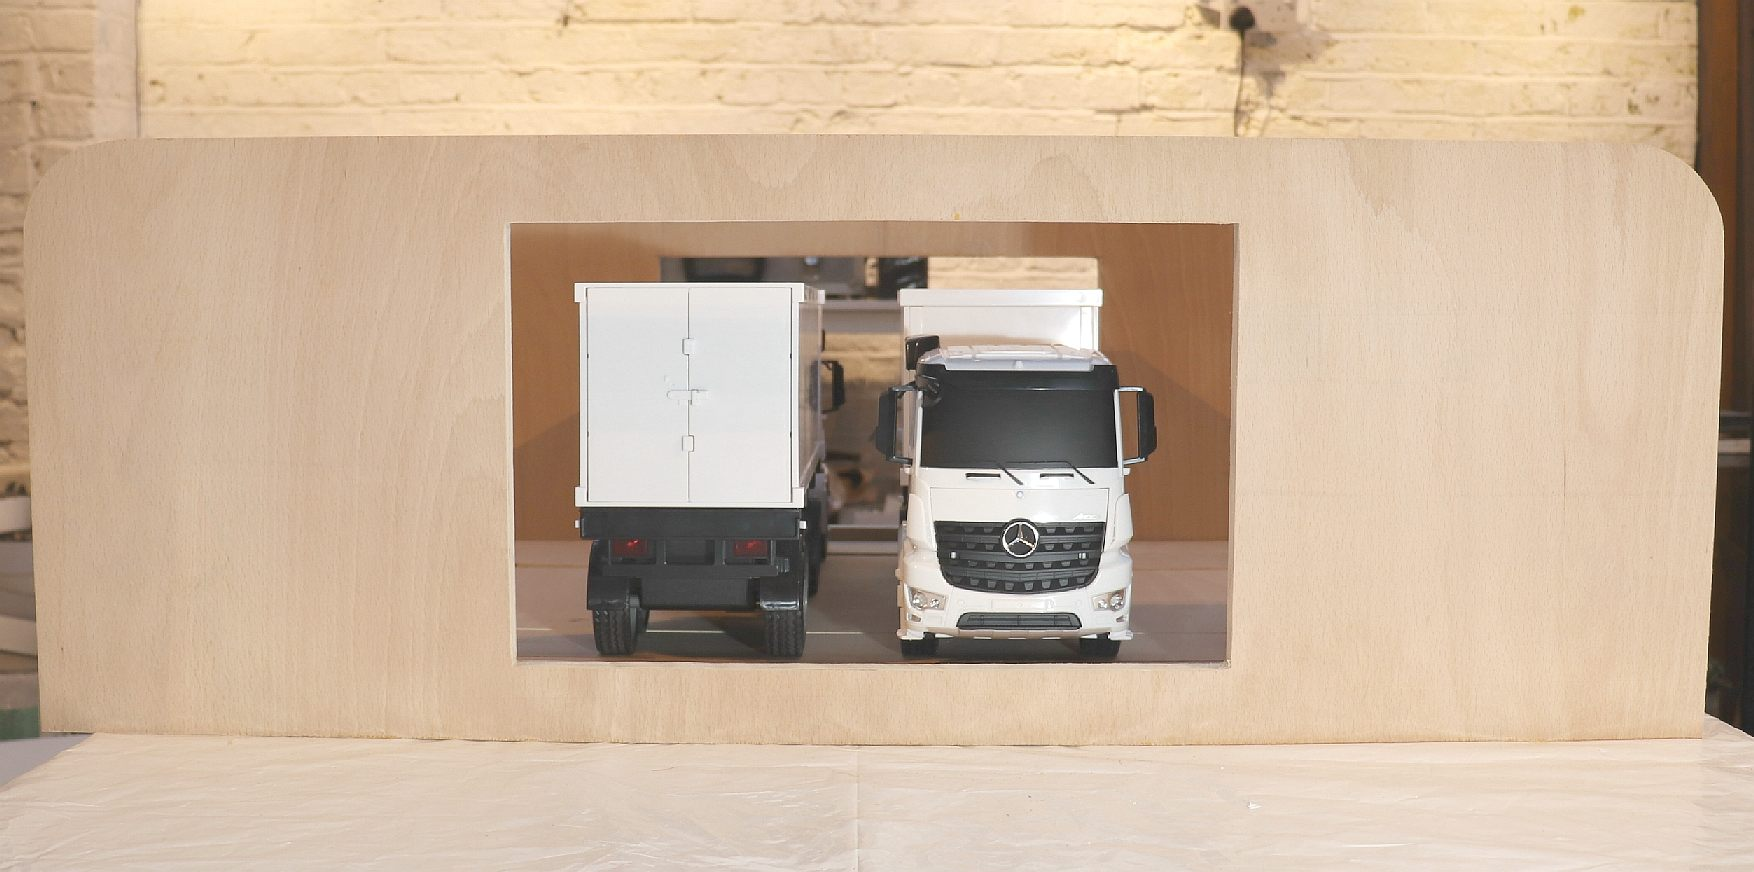 1:20th scale model of an electric truck service station using instant cartridge refuelling